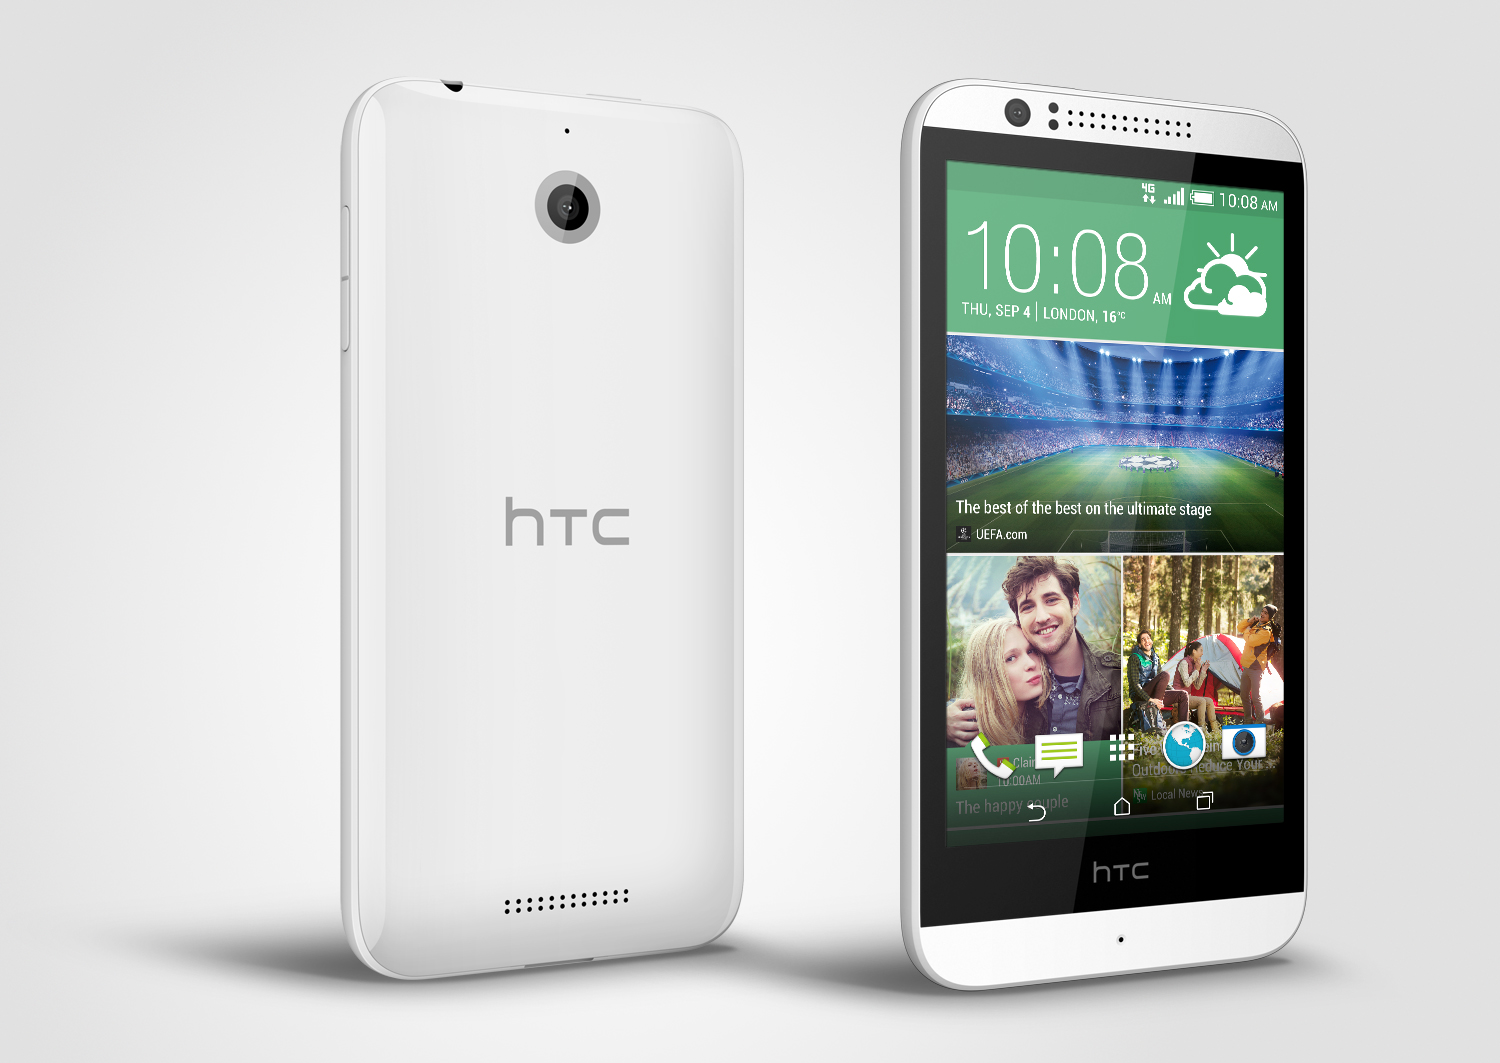 Phone Htc Desire Android Phones htc announces desire 510 first 64 bit android phone